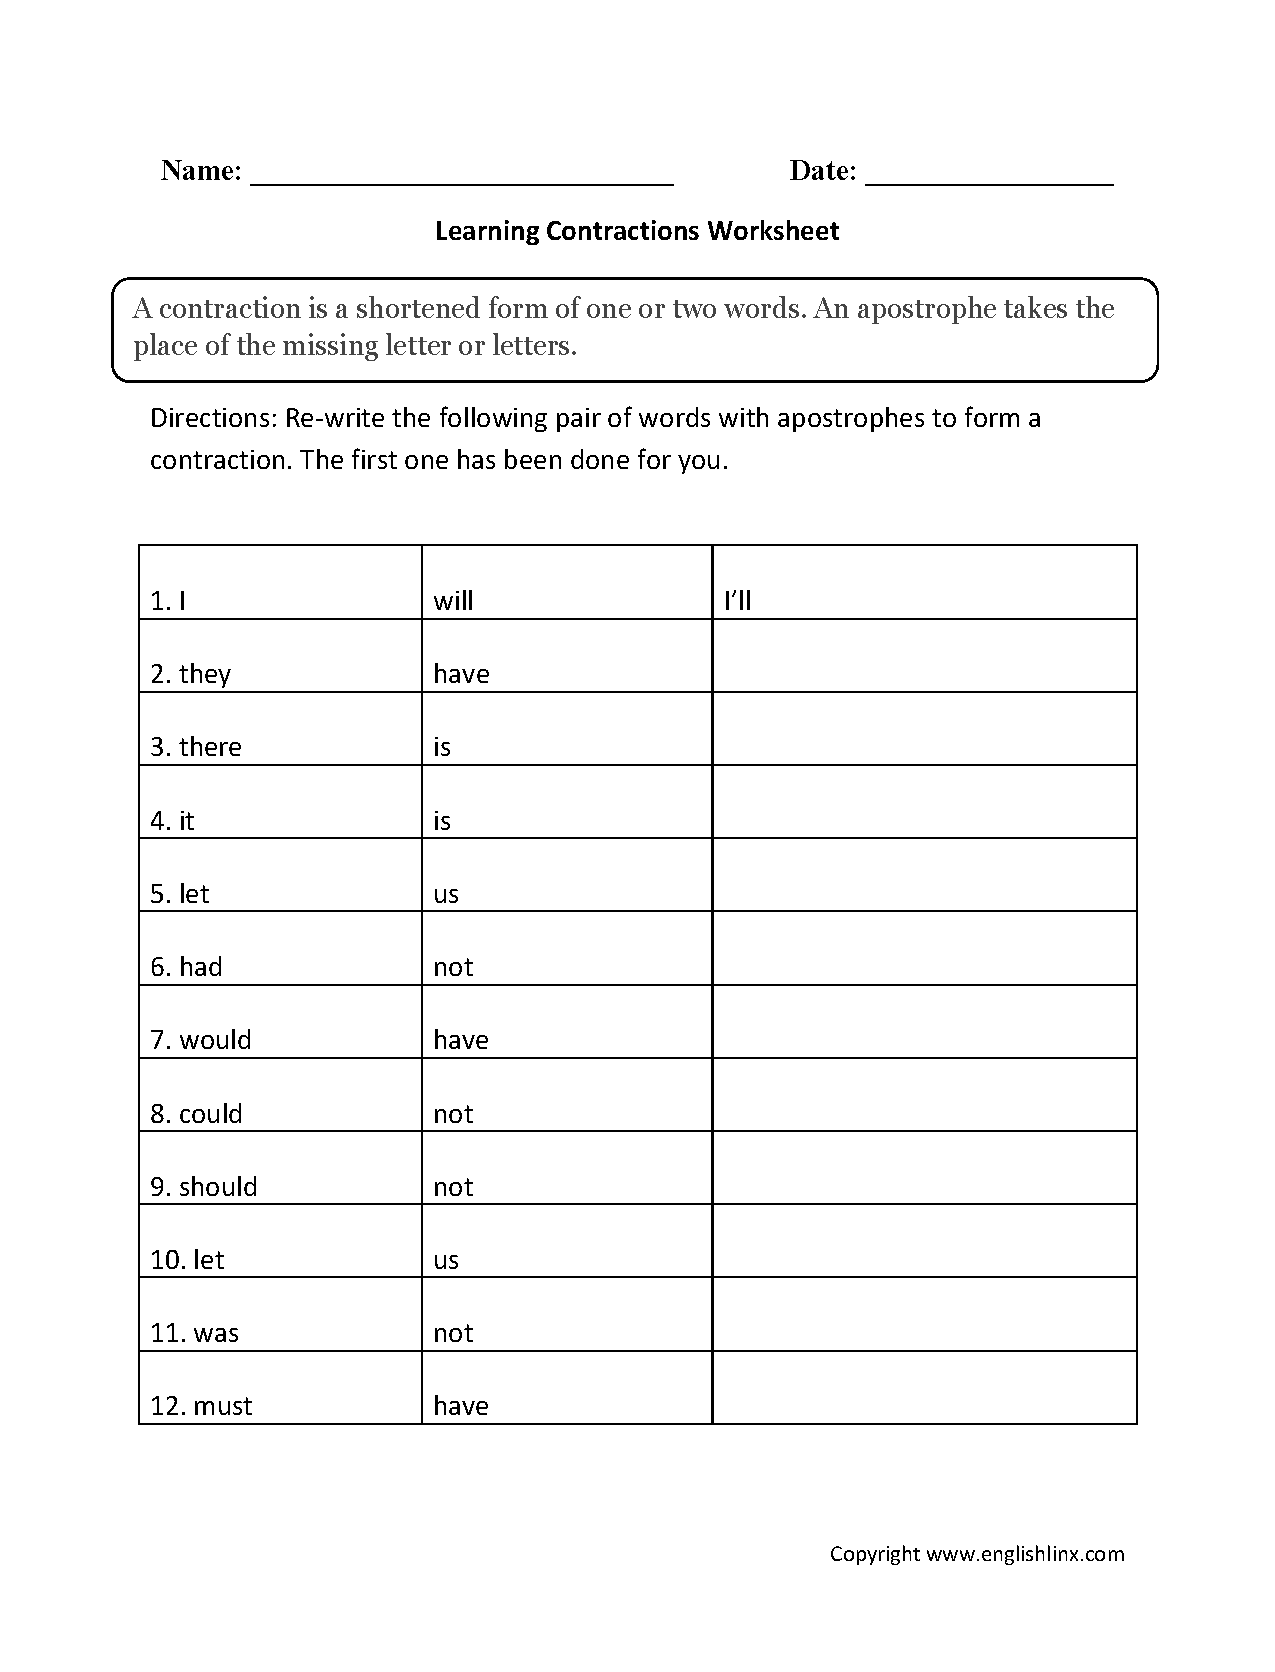 Learning Contractions Worksheets